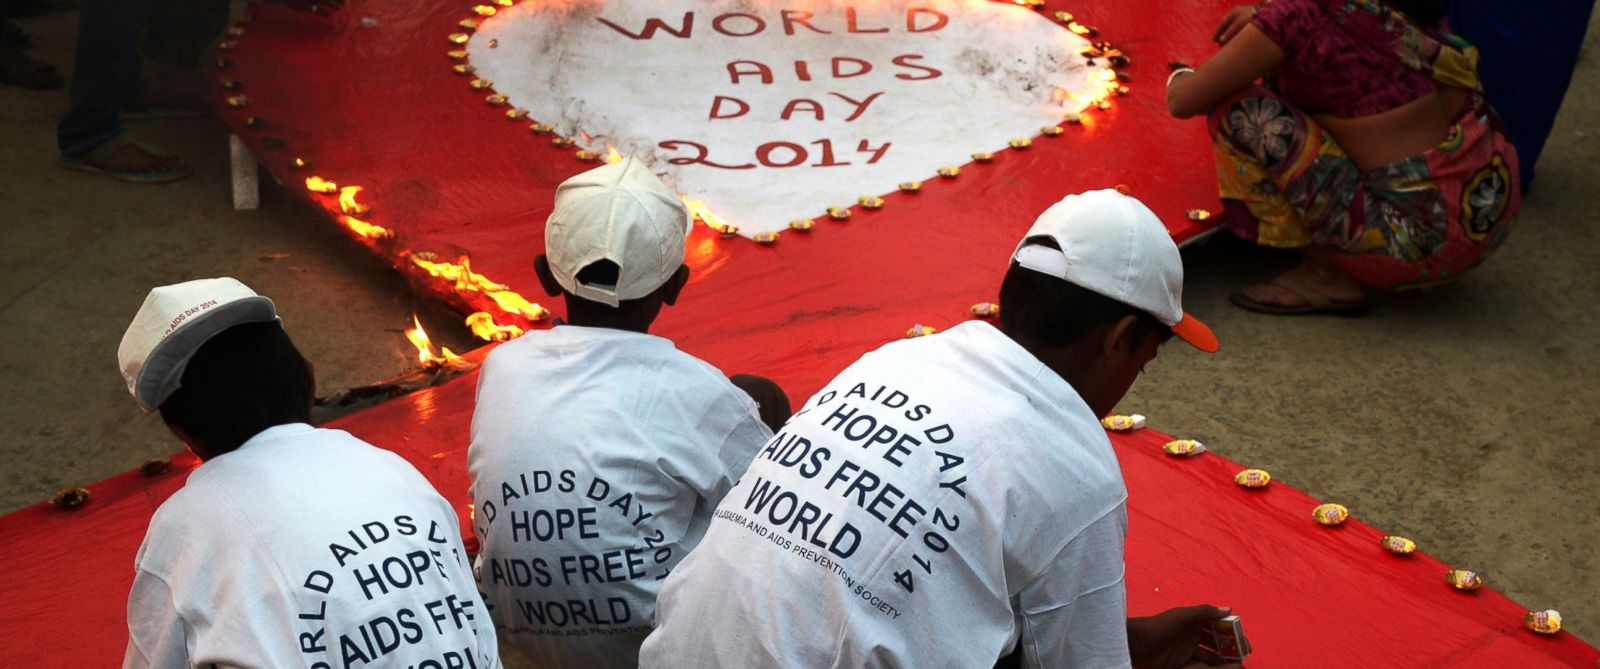 PHOTO: Indian social activists light lamps around a sign during an event to mark World AIDS Day in Kolkata, Dec. 1, 2014.